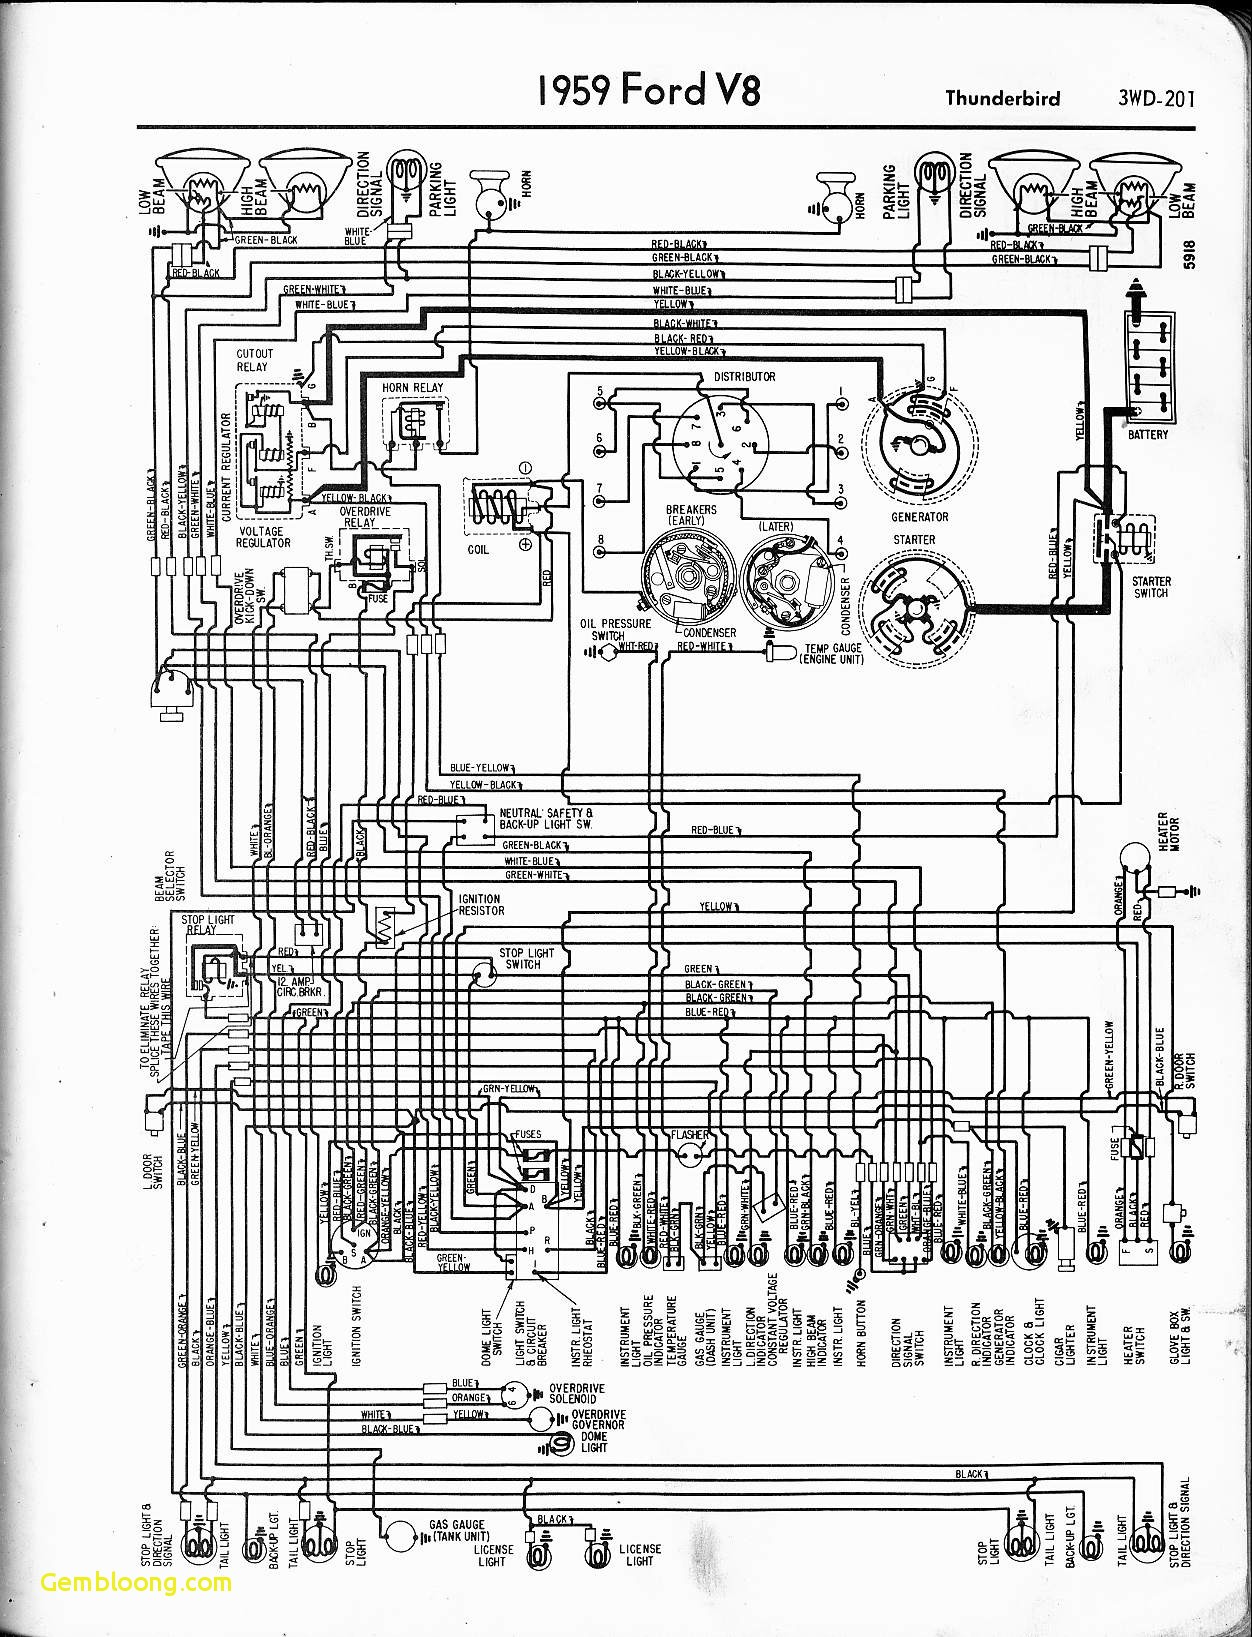 Free Wiring Diagrams for Dodge Trucks Truck Wiring Diagrams Free Of Free Wiring Diagrams for Dodge Trucks